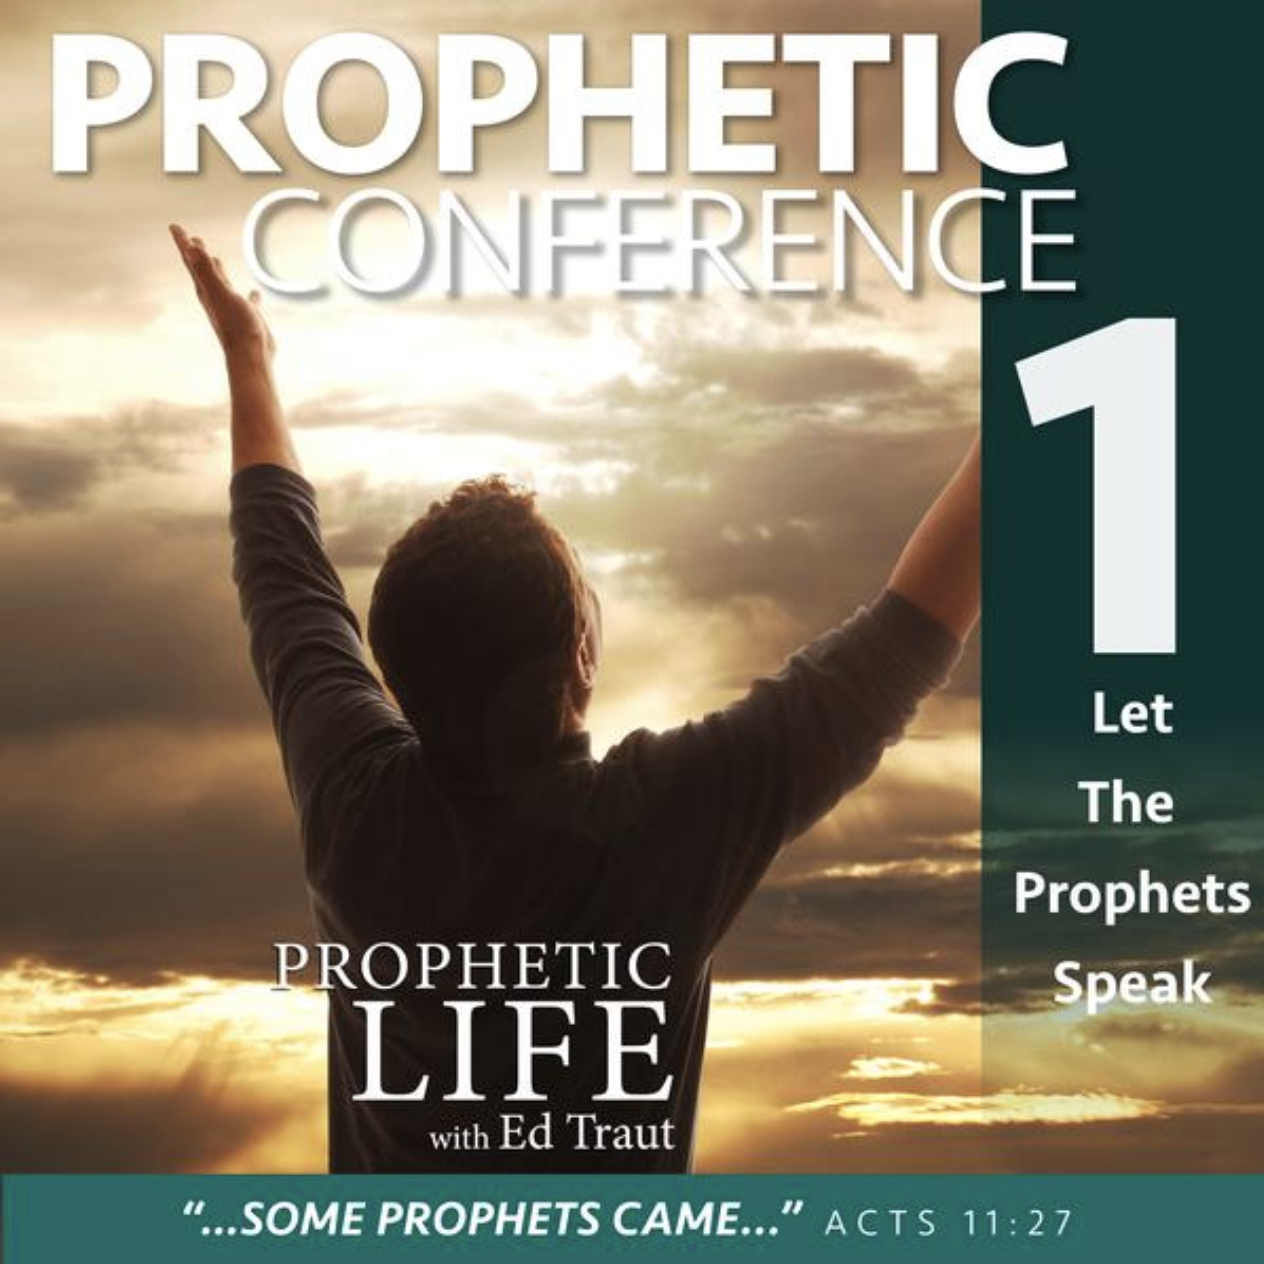 Prophetic conference 1 - 13 Part Series: $1.99 each